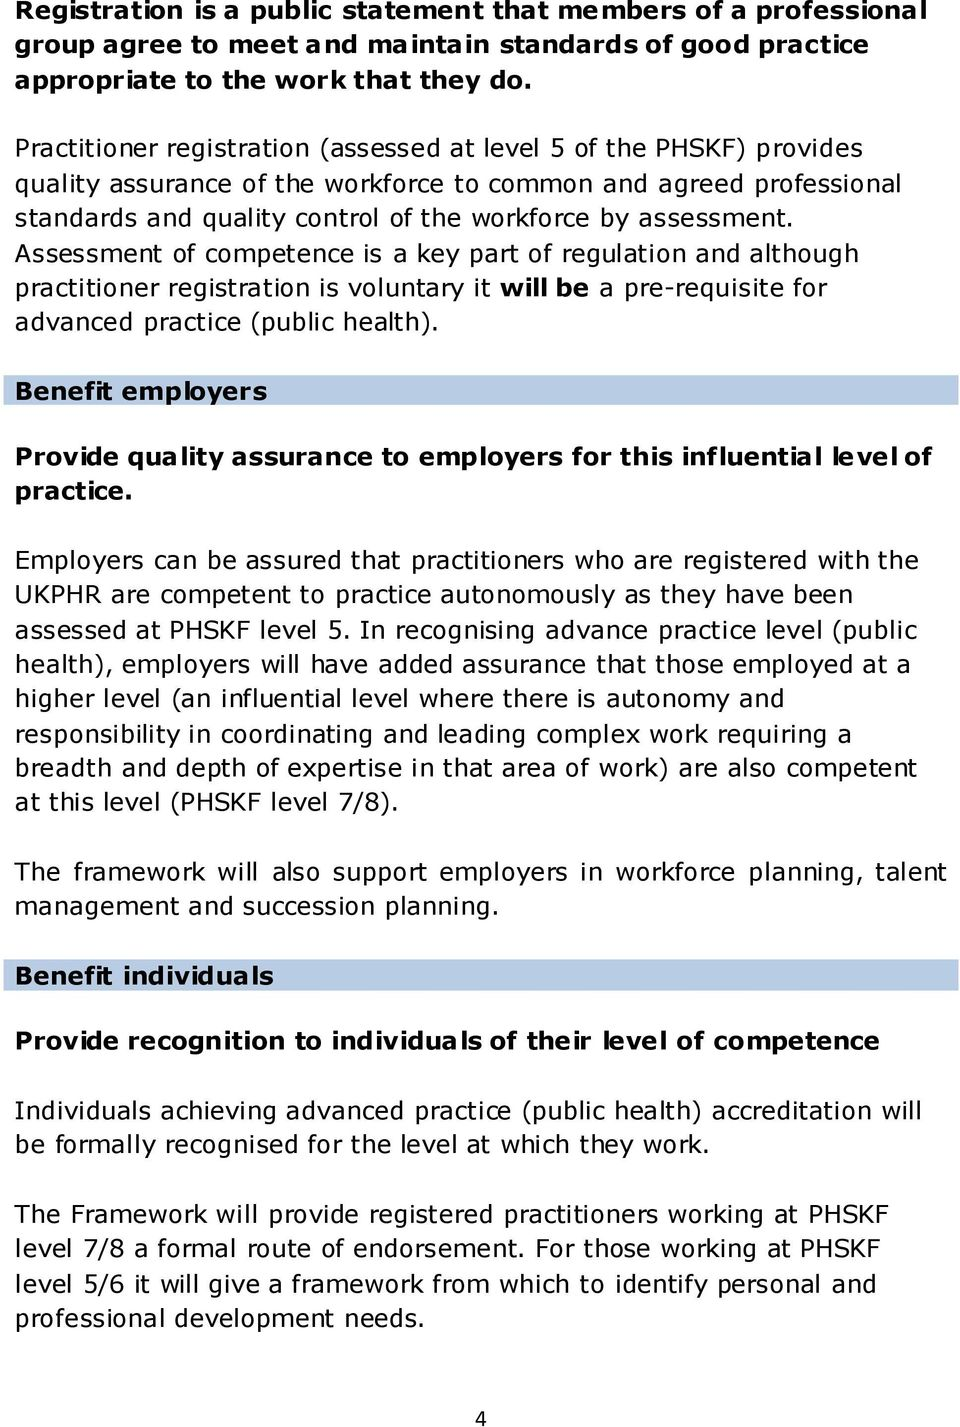 Assessment of competence is a key part of regulation and although practitioner registration is voluntary it will be a pre-requisite for advanced practice (public health).